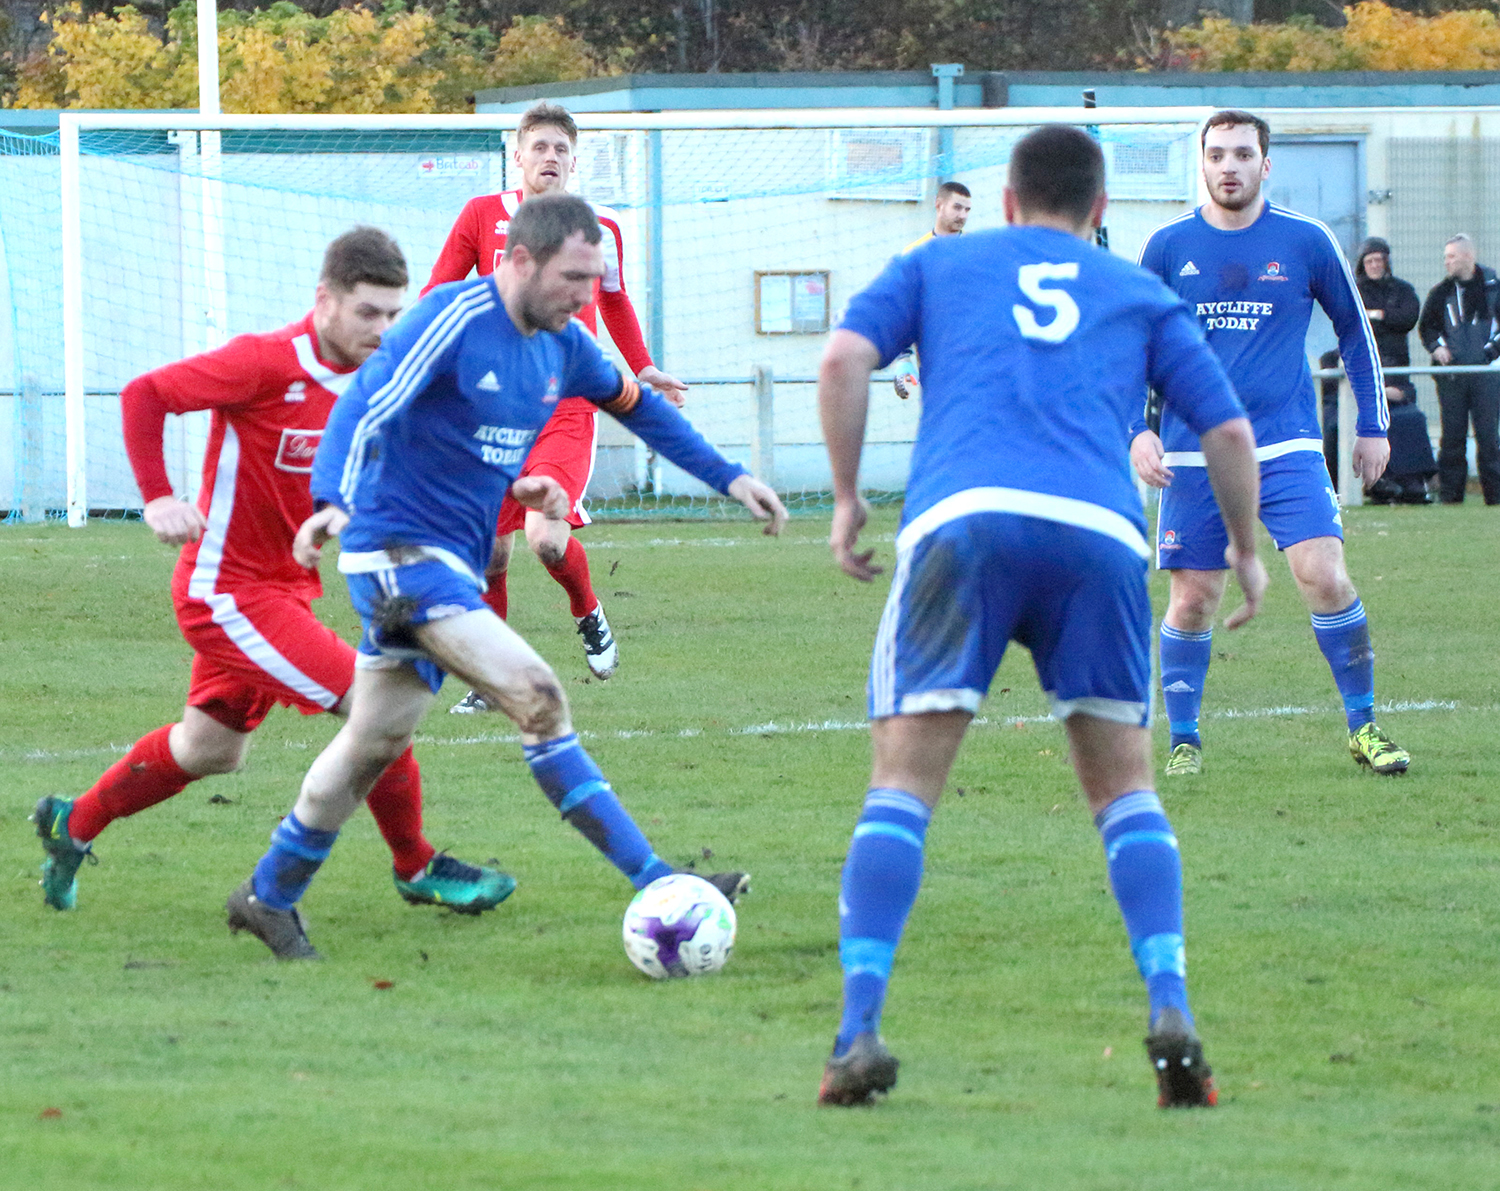 Aycliffe Lose Match to League Leaders